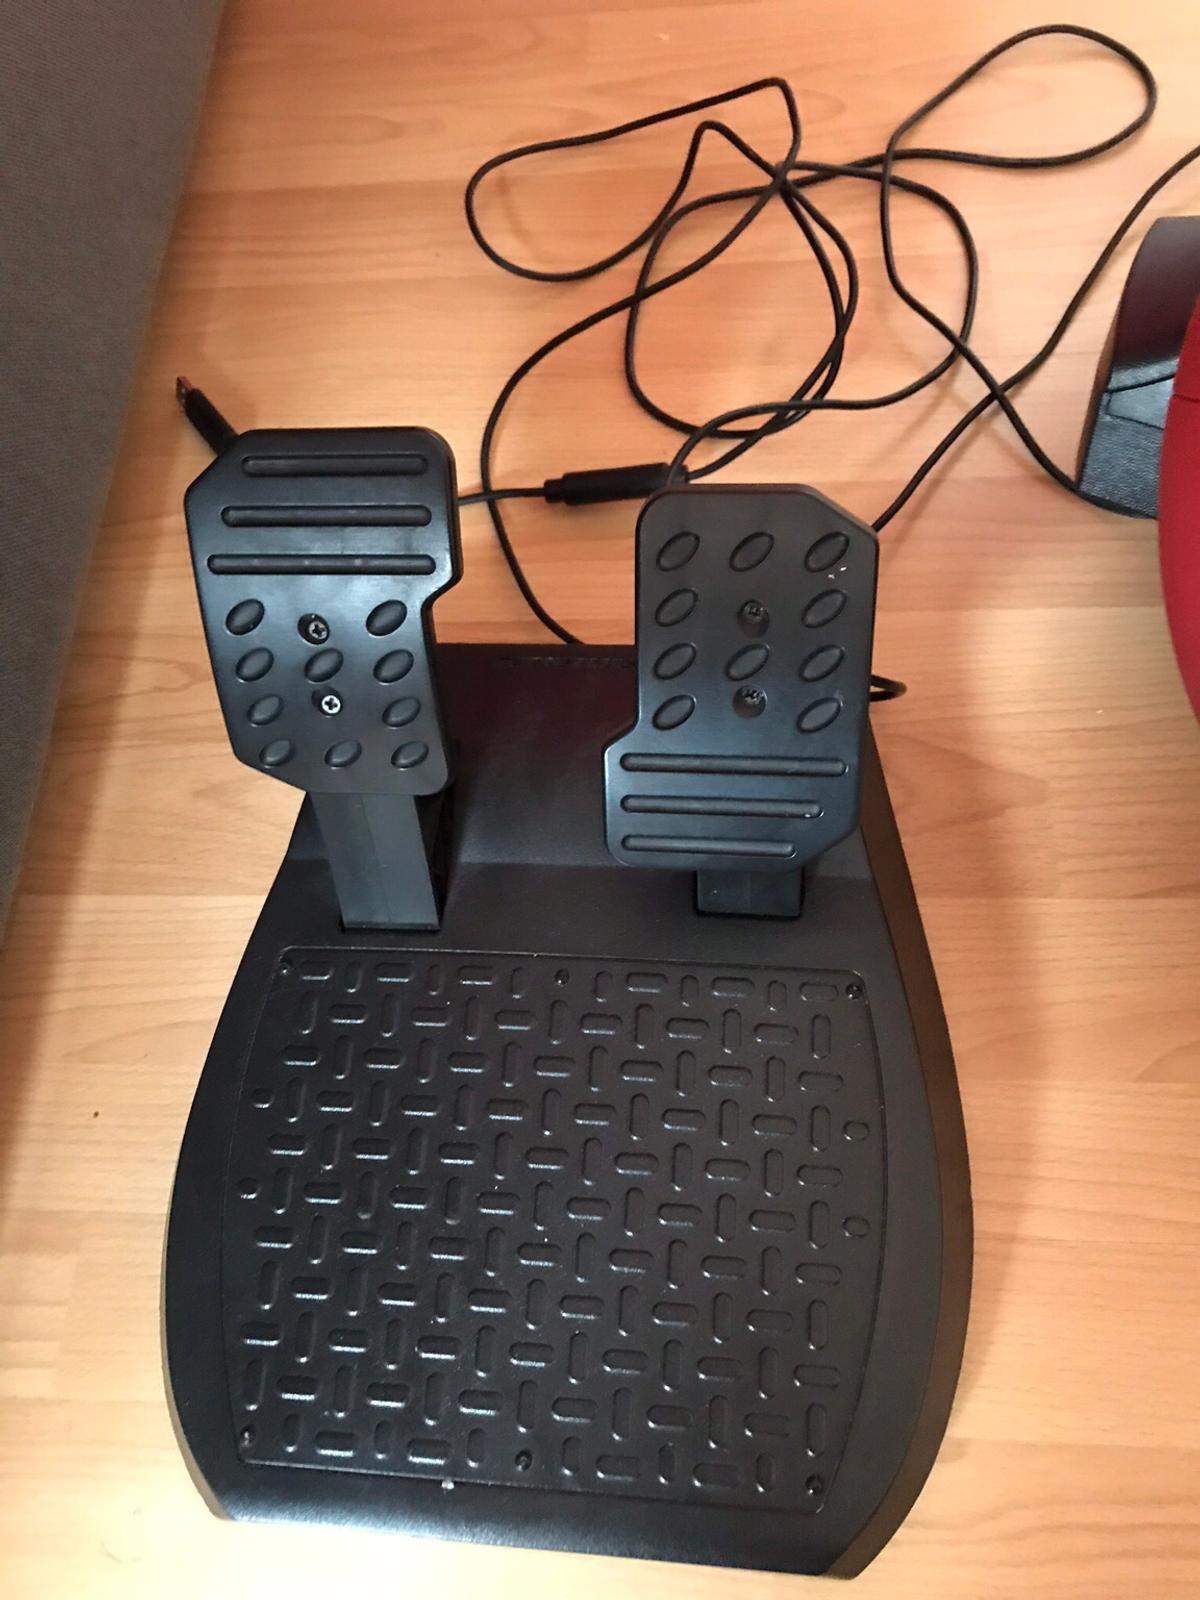 b30353322fc Xbox racing wheel in BS37 Chipping Sodbury for £40.00 for sale - Shpock